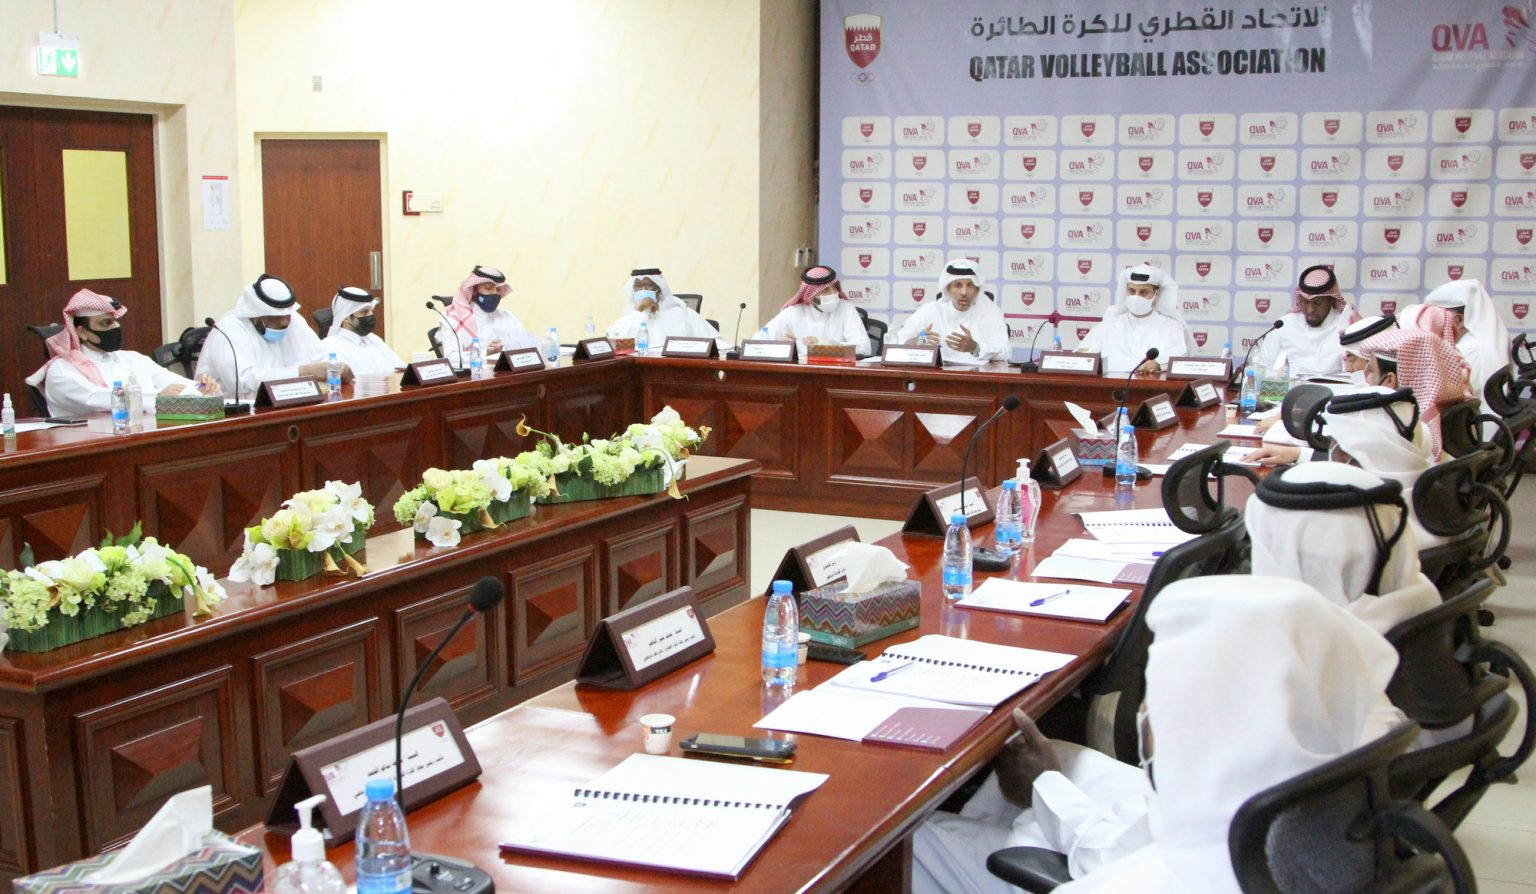 QVA CONDUCTS ORDINARY GENERAL ASSEMBLY FOR 2020/2021 SEASON